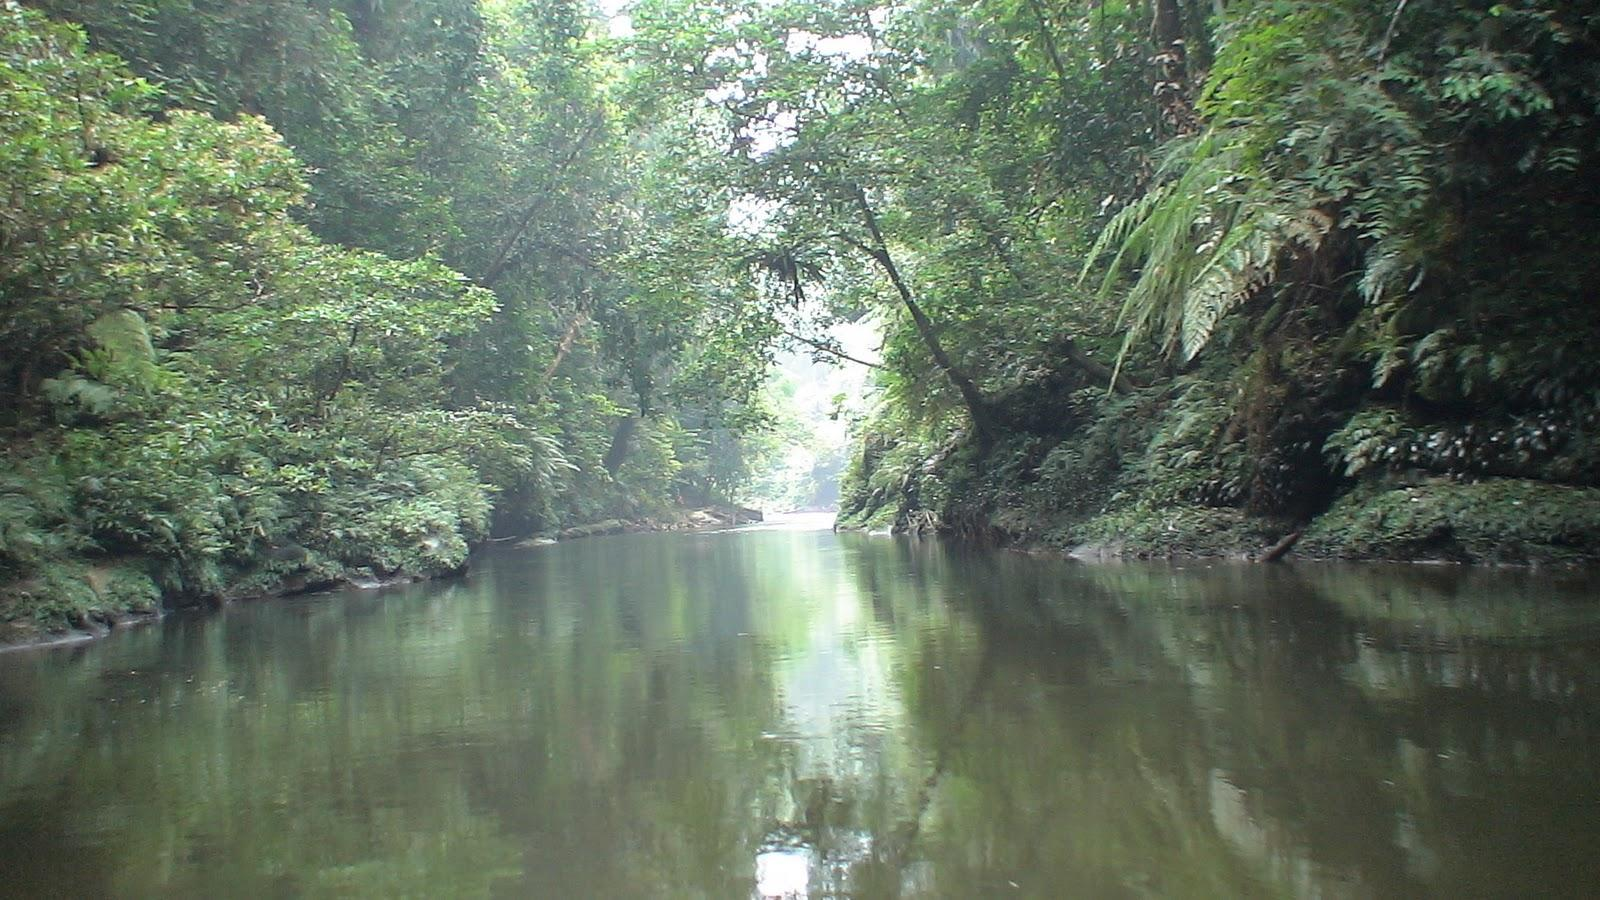 Bukit Tigapuluh National Park holds valuable extraordinary flora and fauna